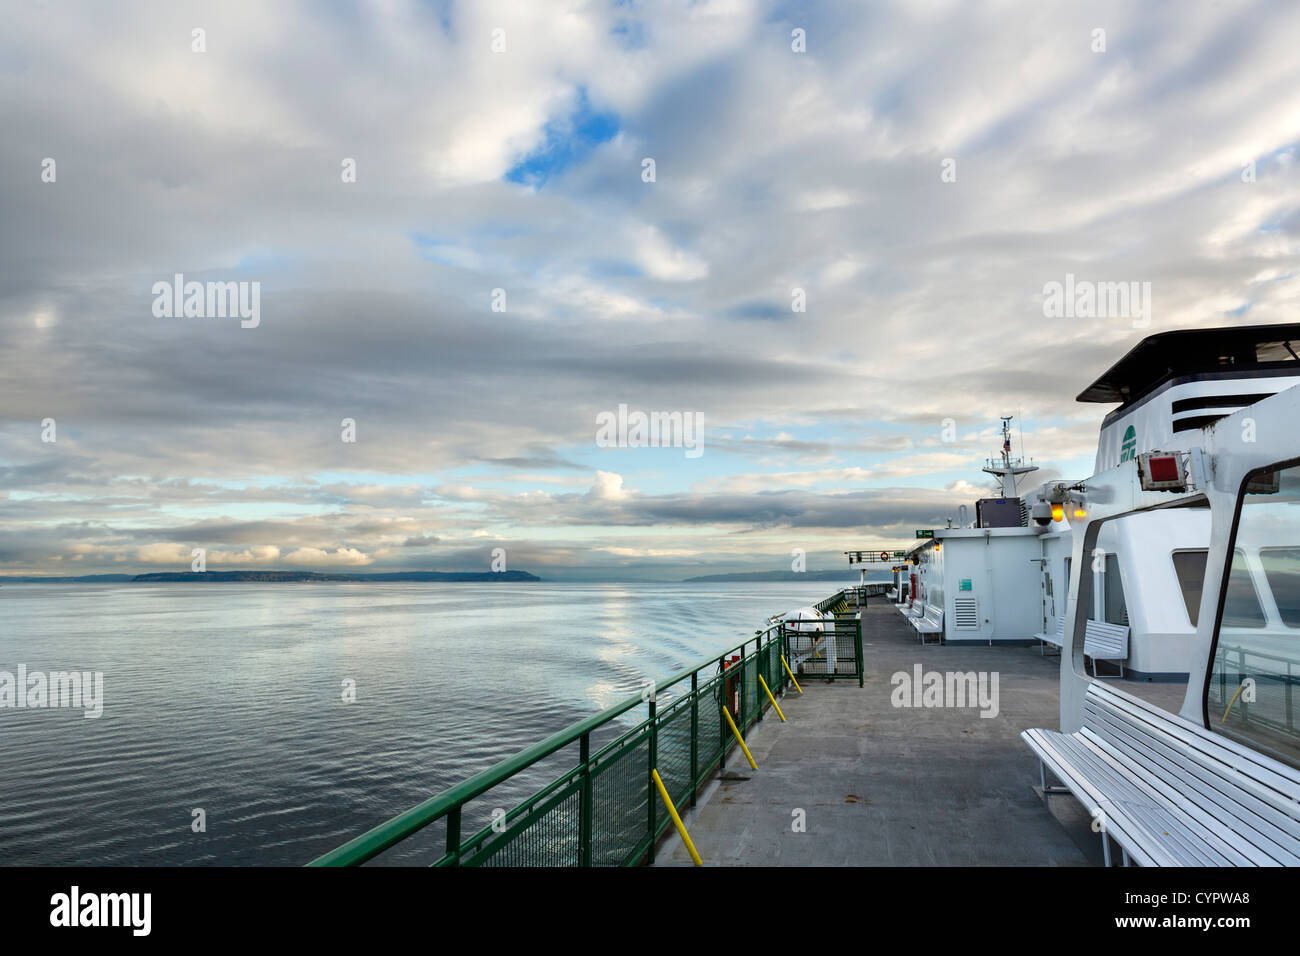 Washington State Ferry on Puget Sound between Edmonds and Kingston in the early morning, Washington, USA - Stock Image